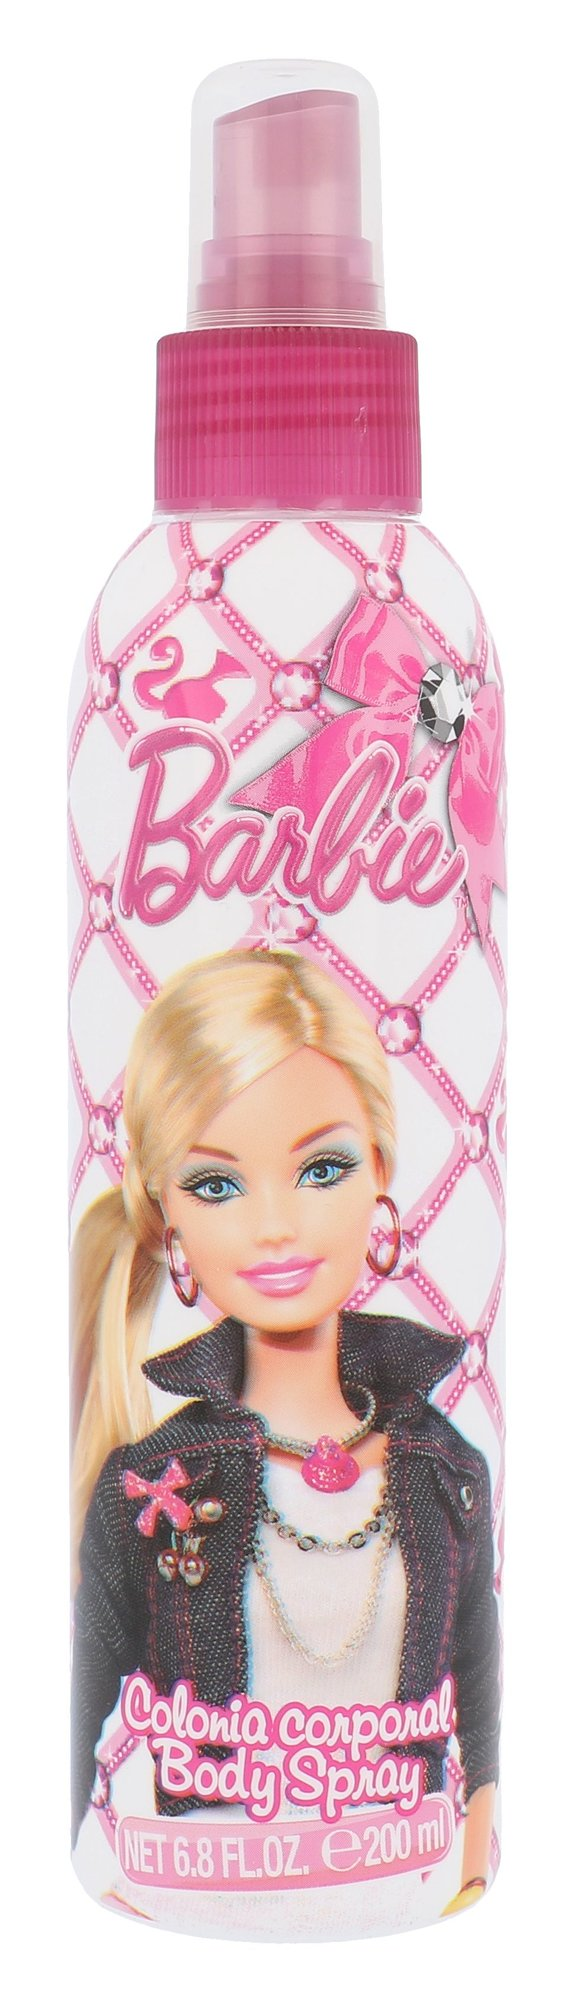 Barbie Barbie Tělový spray 200ml